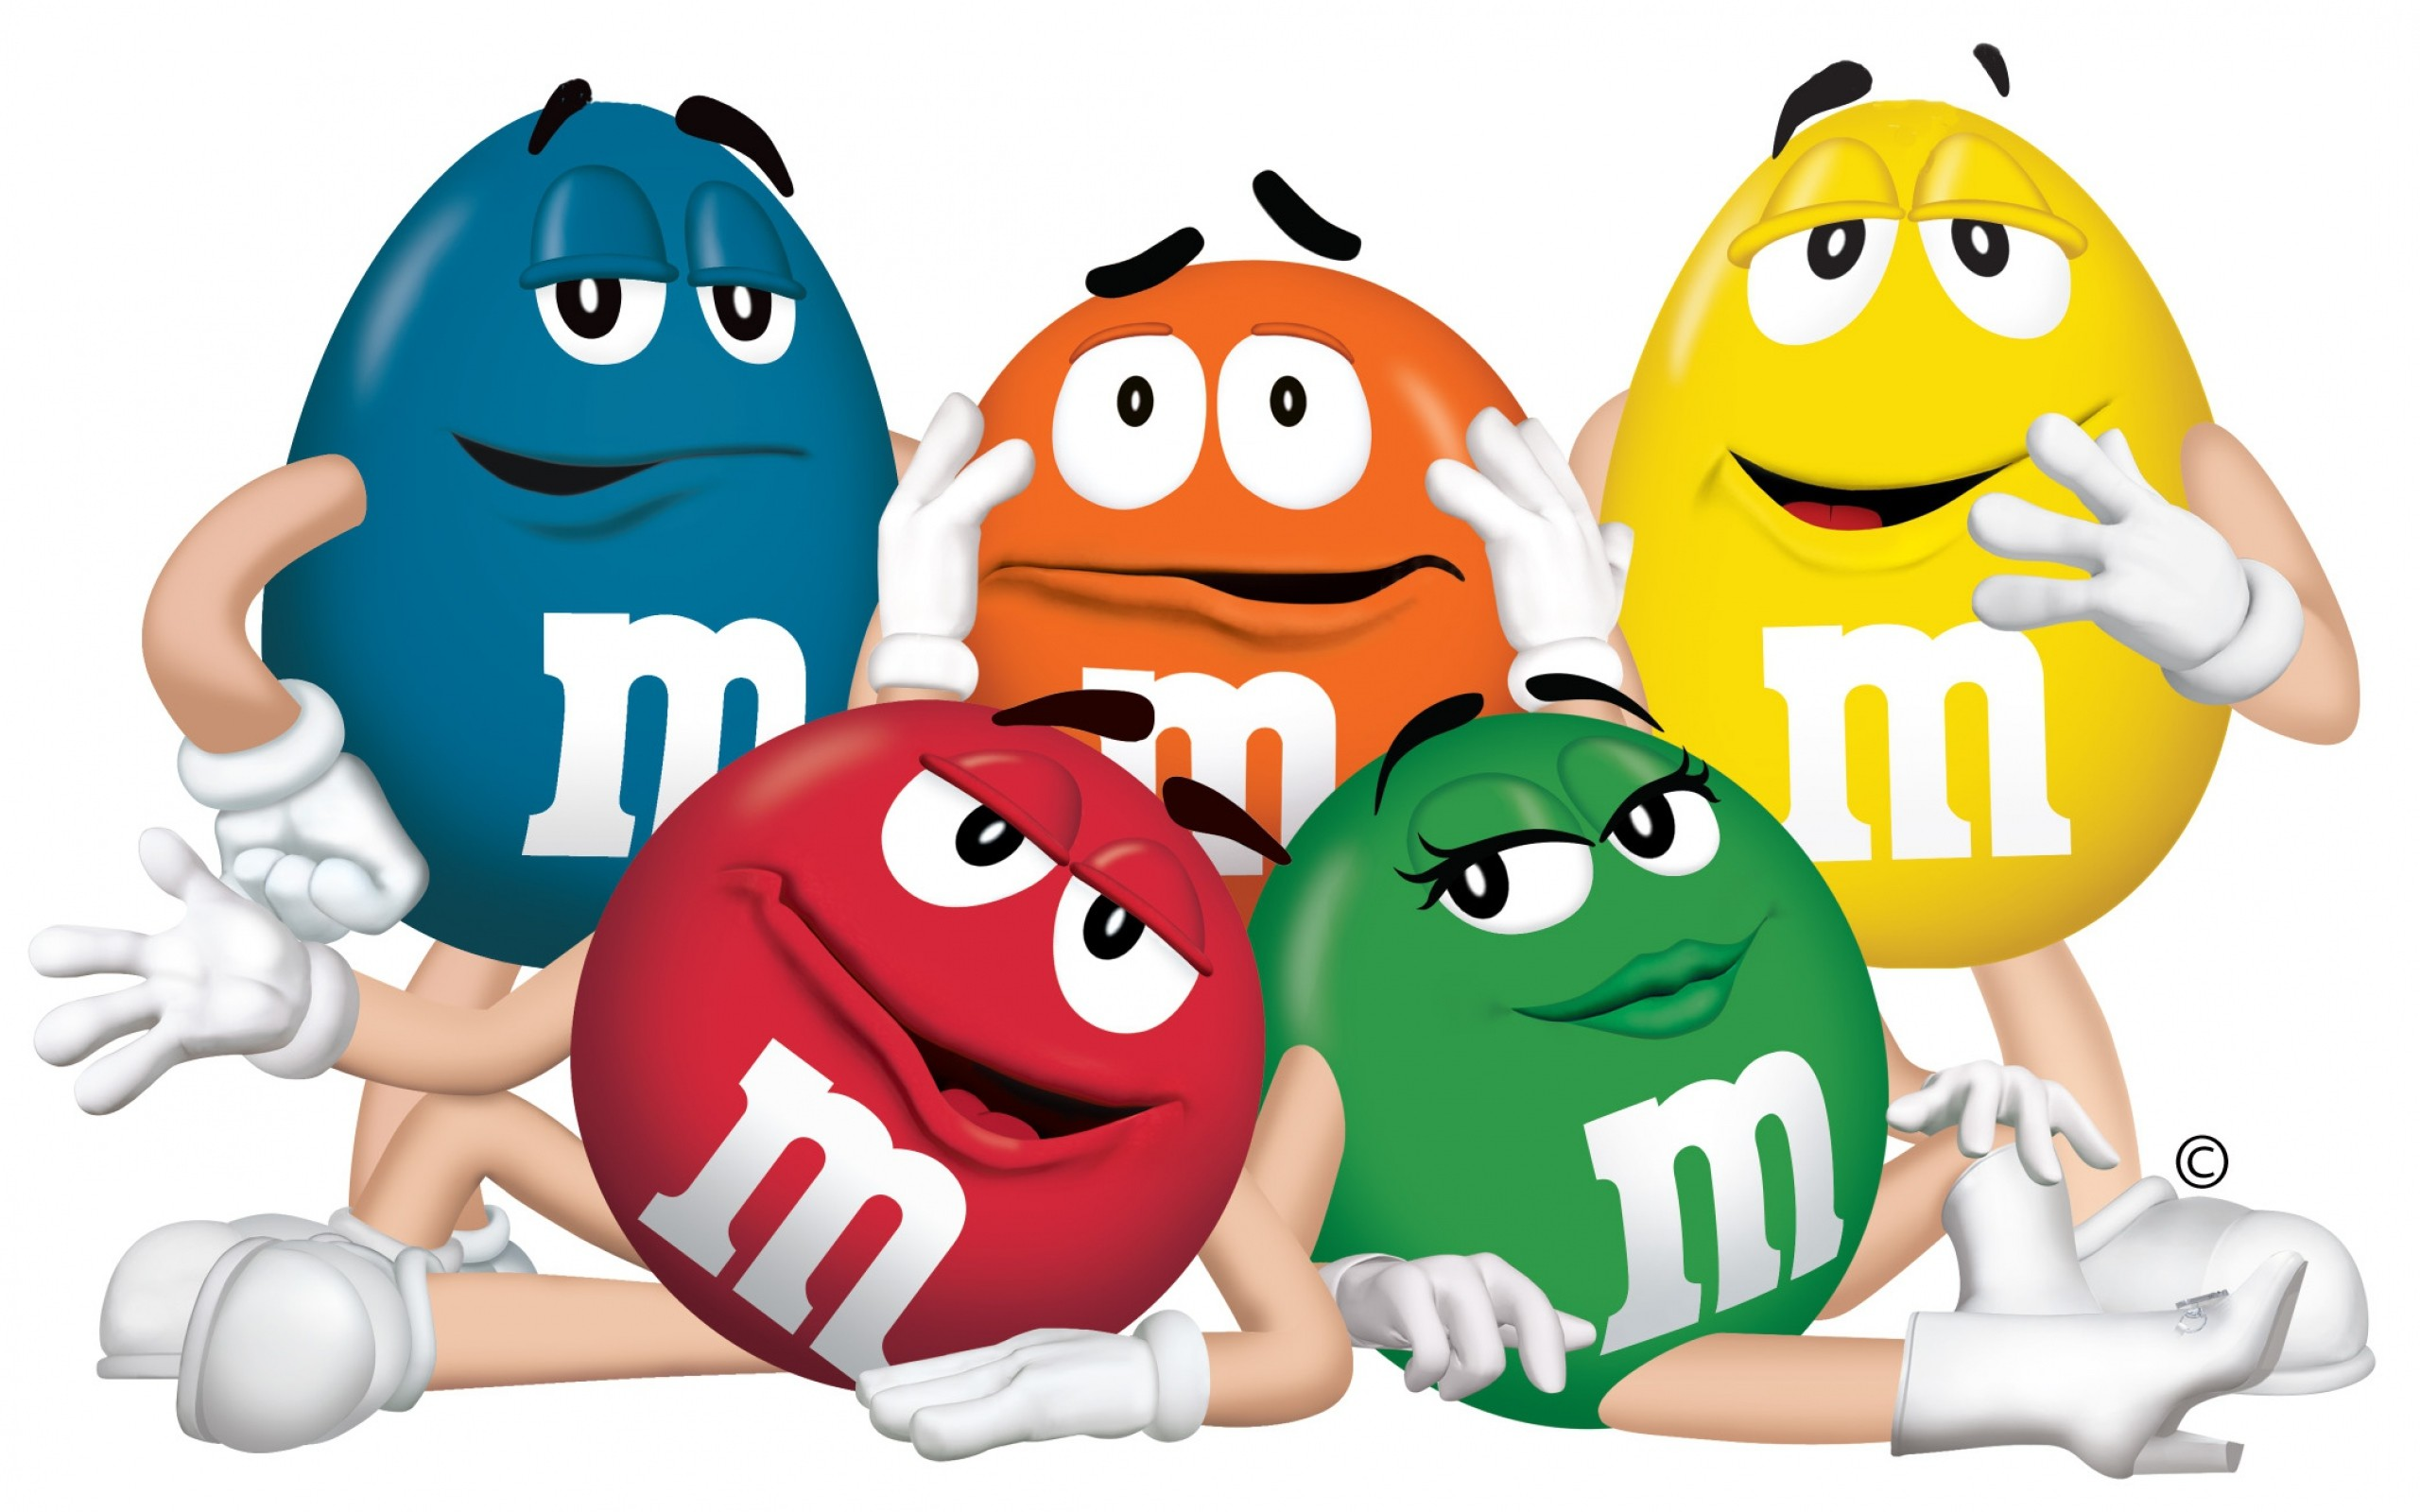 Wallpaper m and m, mm, characters, chocolate, candy, blue,